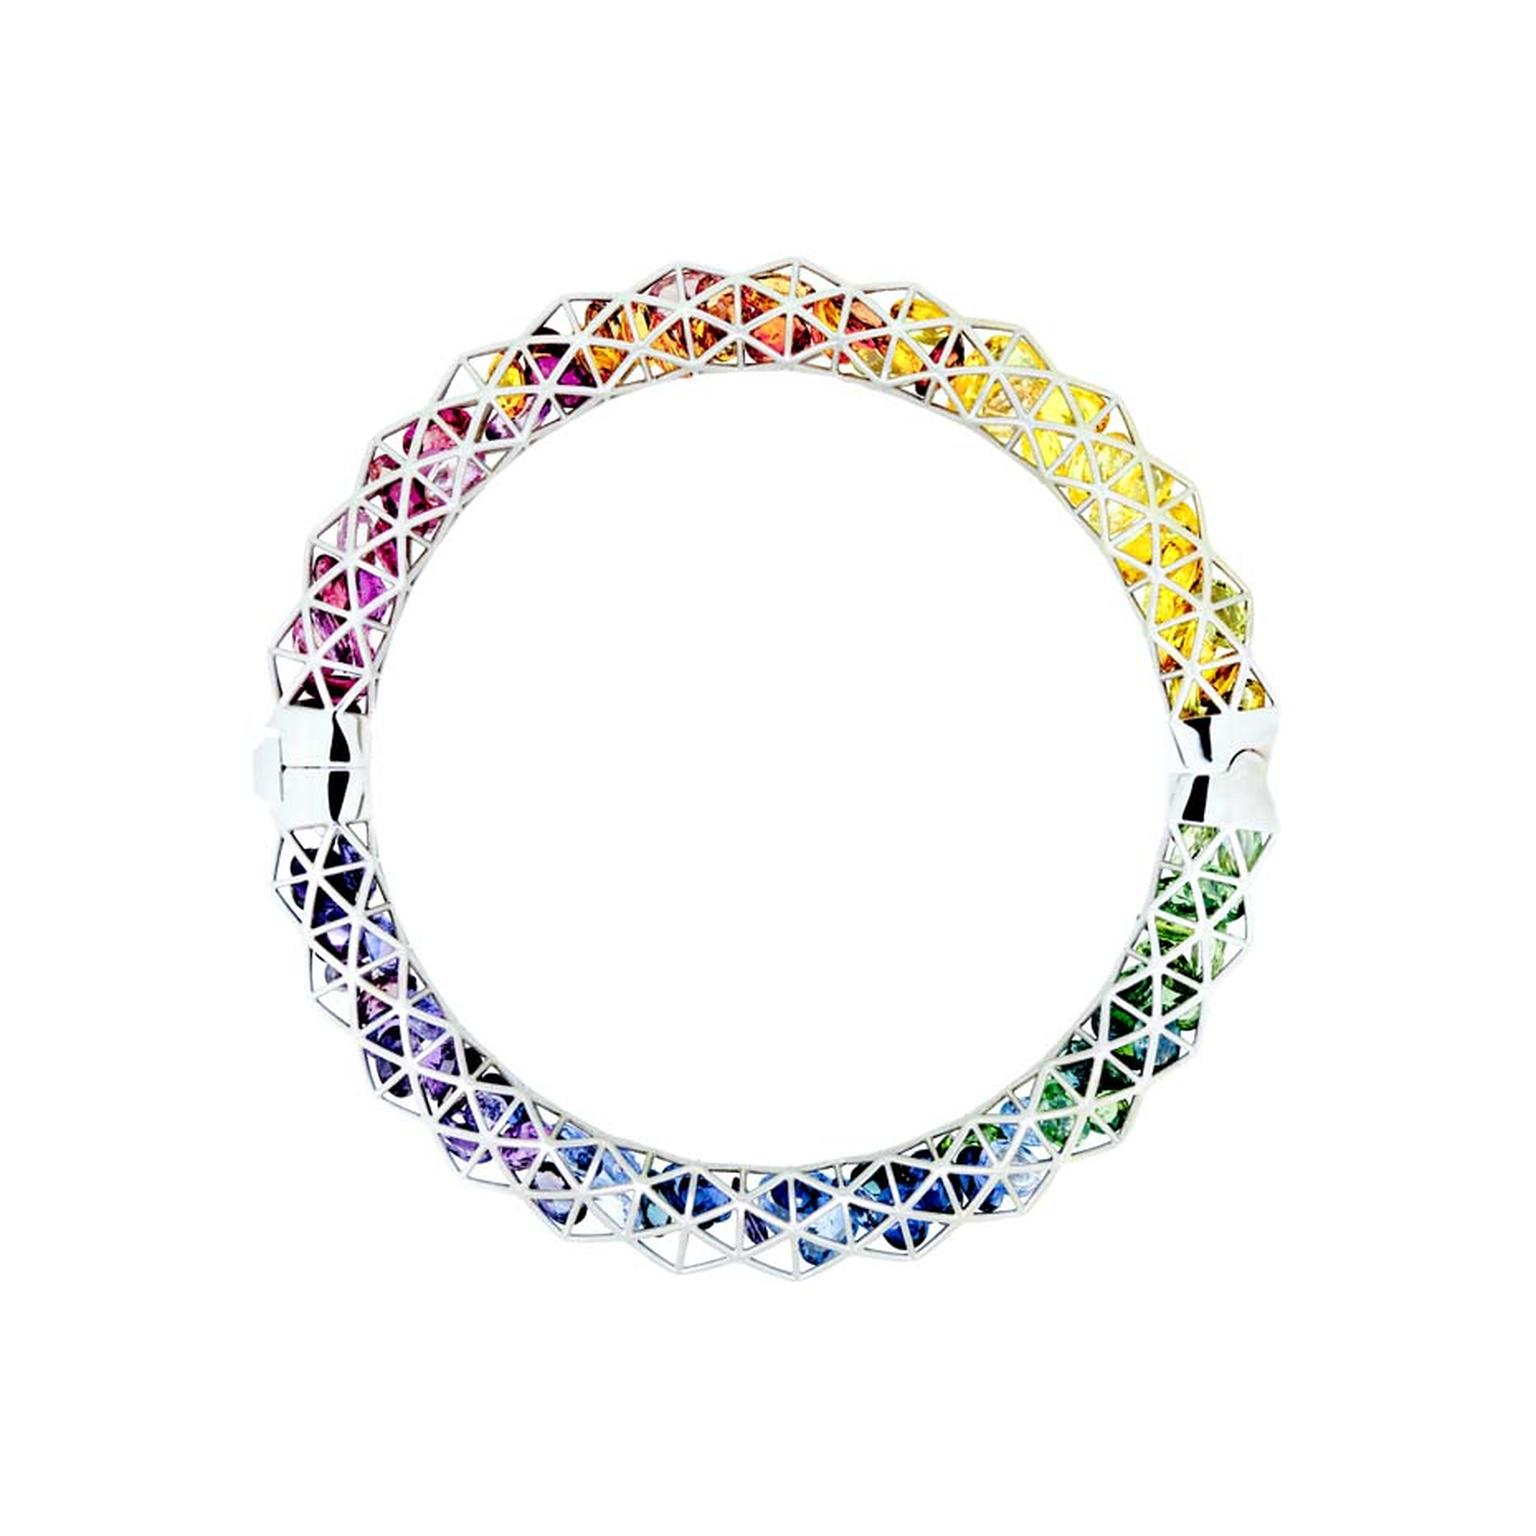 Roule & Co. wire caged white gold Triangle bangle containing rainbow sapphires.